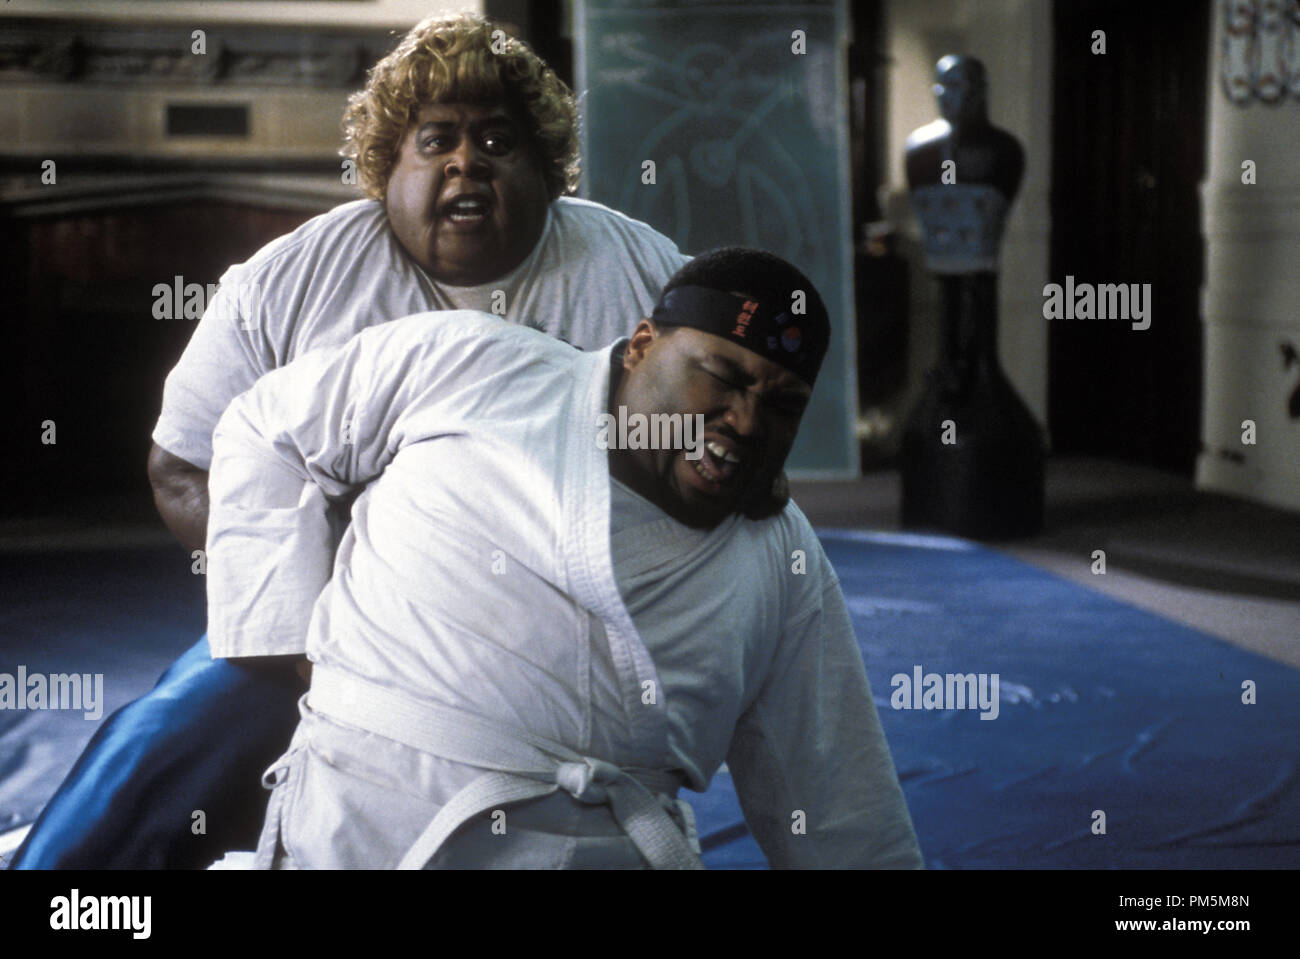 Film Still / Publicity Stills from 'Big Momma's House' Martin Lawrence, Anthony Anderson © 2000 20th Century Fox Photo Credit: Nicola Goode File Reference # 30846738THA  For Editorial Use Only -  All Rights Reserved - Stock Image